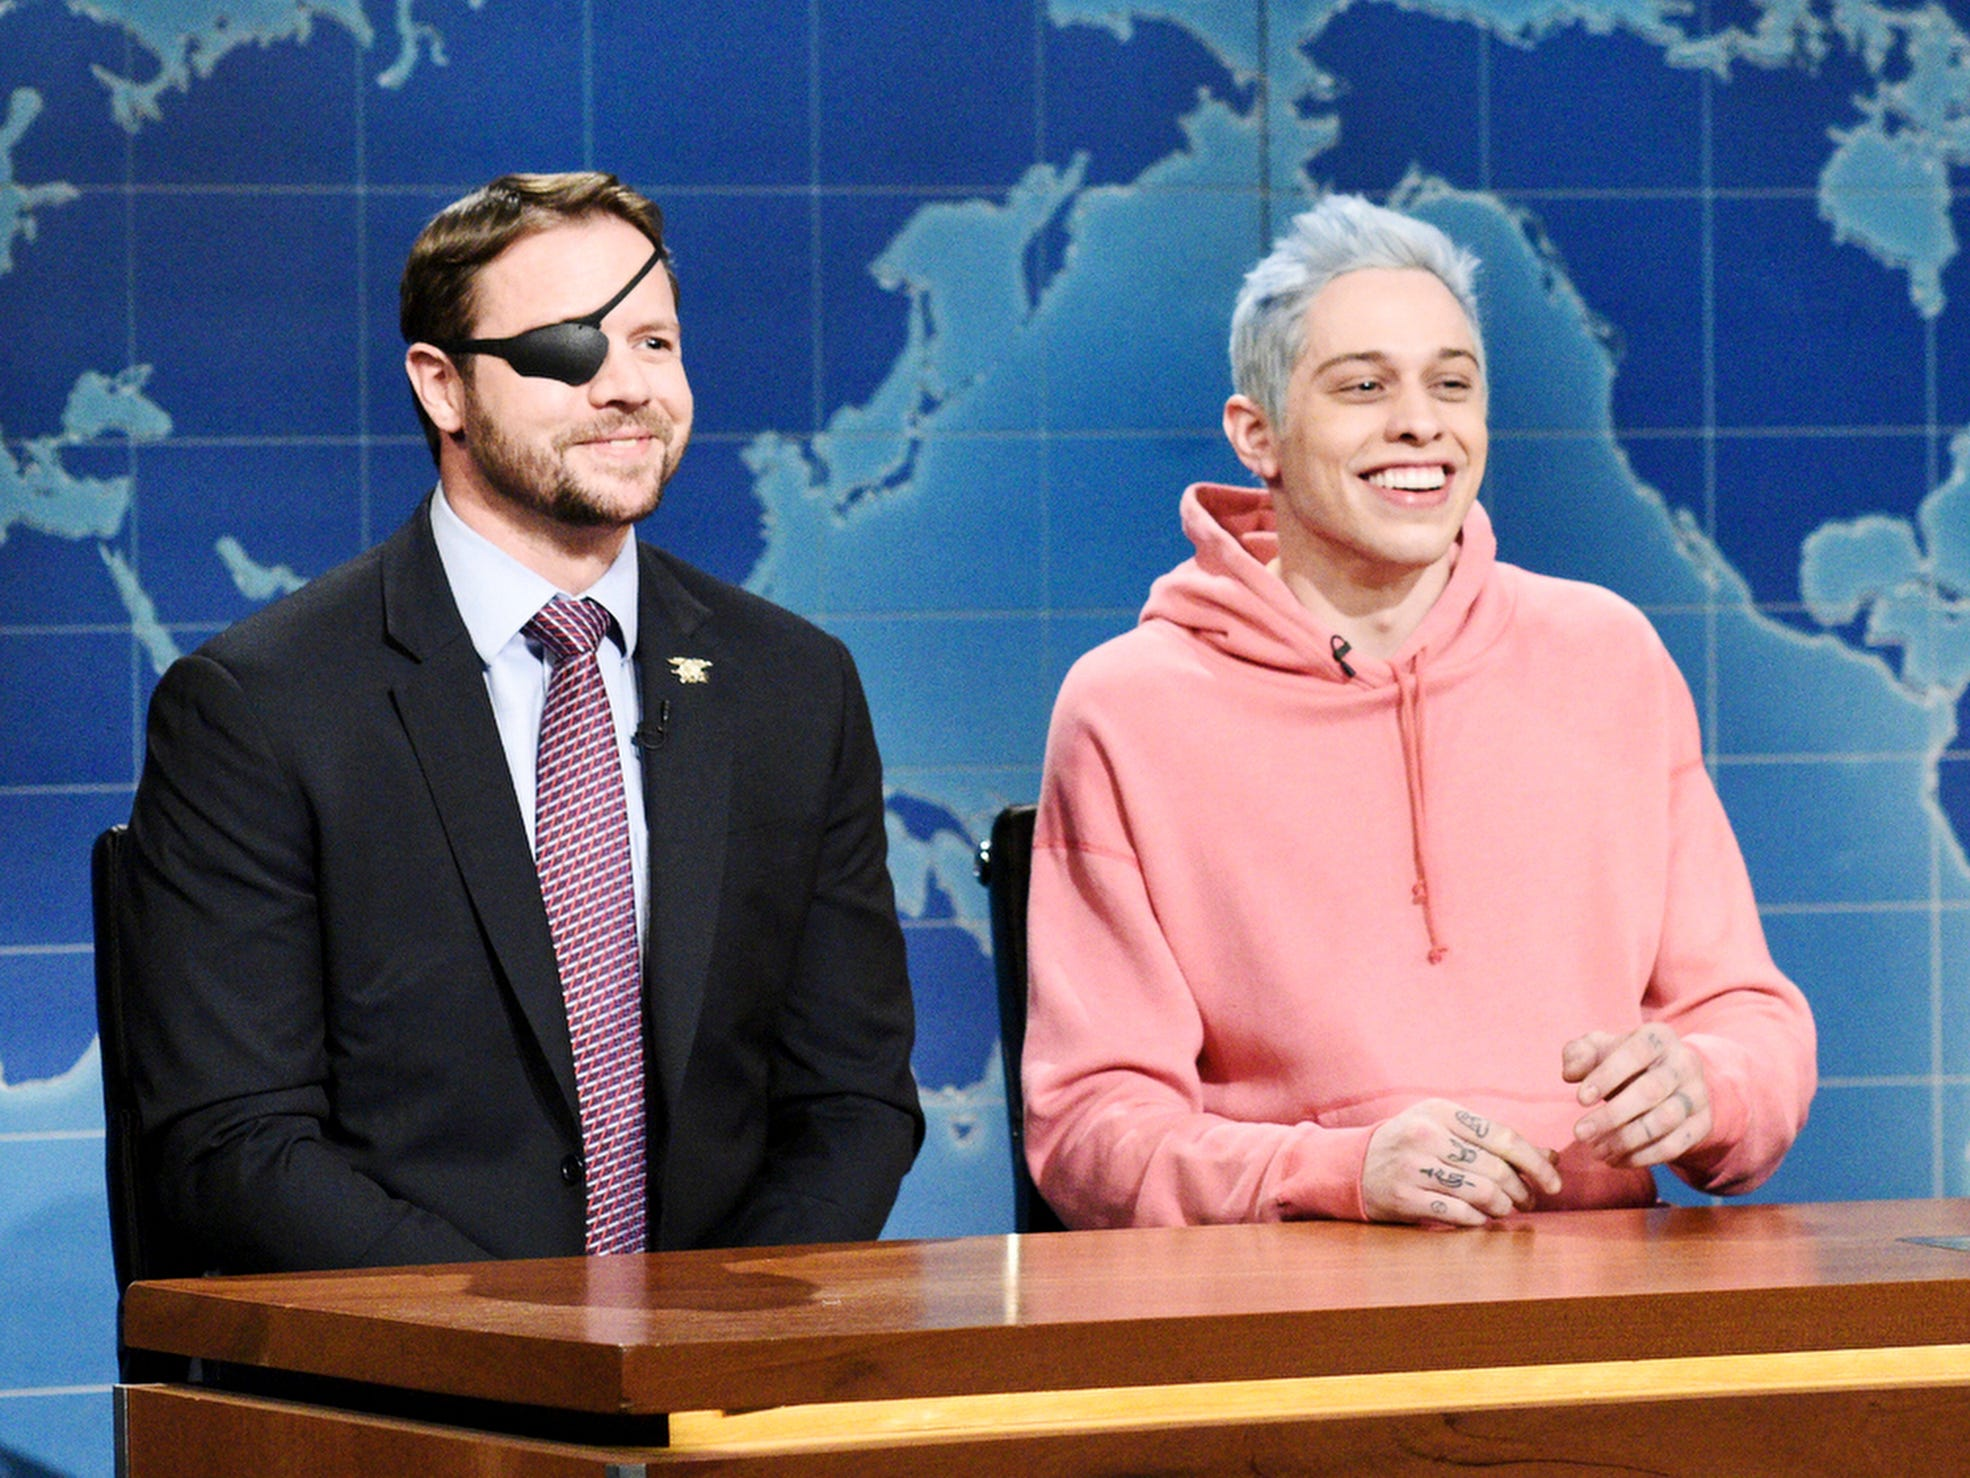 "A week after Pete Davidson received criticism for his jokes about military veteran Dan Crenshaw running for public office, the former Navy SEAL got his turn at the ""Weekend Update"" desk in the Nov. 10 episode. The newly-elected Congressman cracked jokes at Davidson's expense and taunted him with a ringtone from the comedian's ex-ex-fiancee, Ariana Grande. But he ended with a serious message of unity. ""There's a lot to learn here,"" Crenshaw said. ""Not just that the left and right can still agree on some things, but also, Americans can forgive one another. We can remember what brings us together as a country and still see the good in each other."""